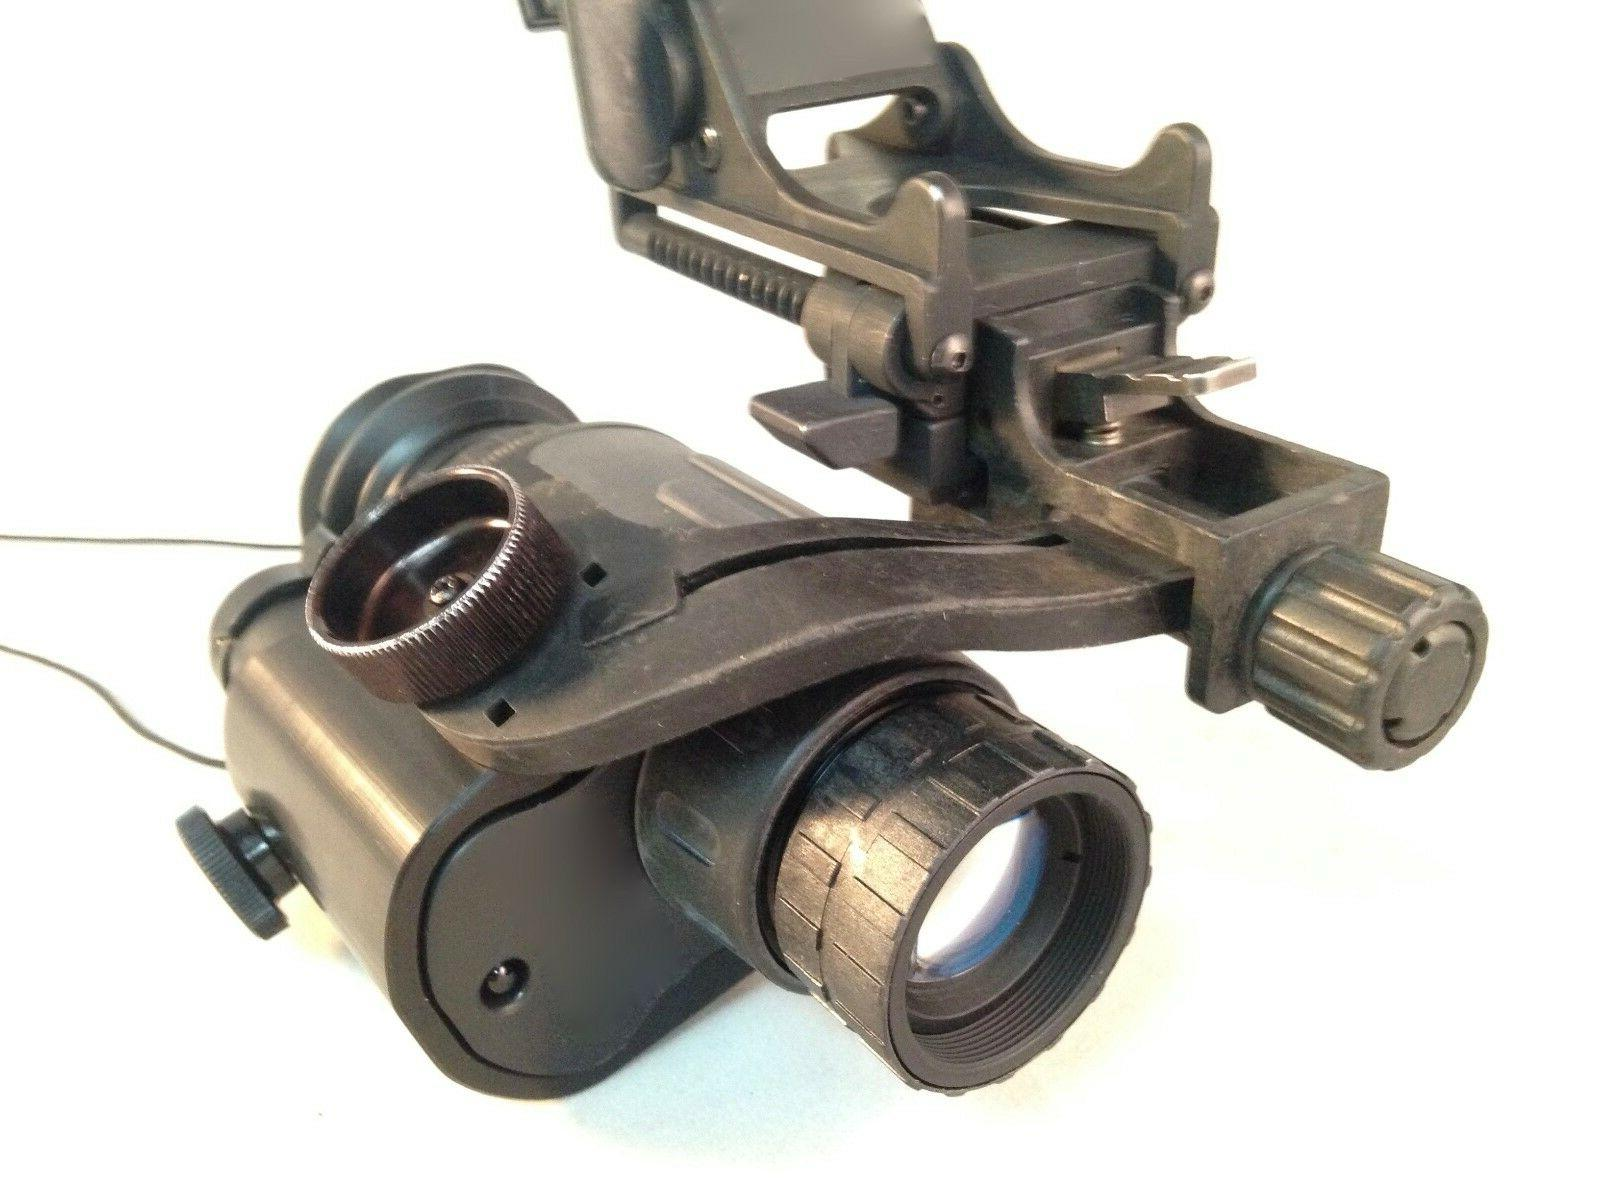 ENVIS Half Adapter. Mount your ENVIS M703 Night to PVS-14 gear